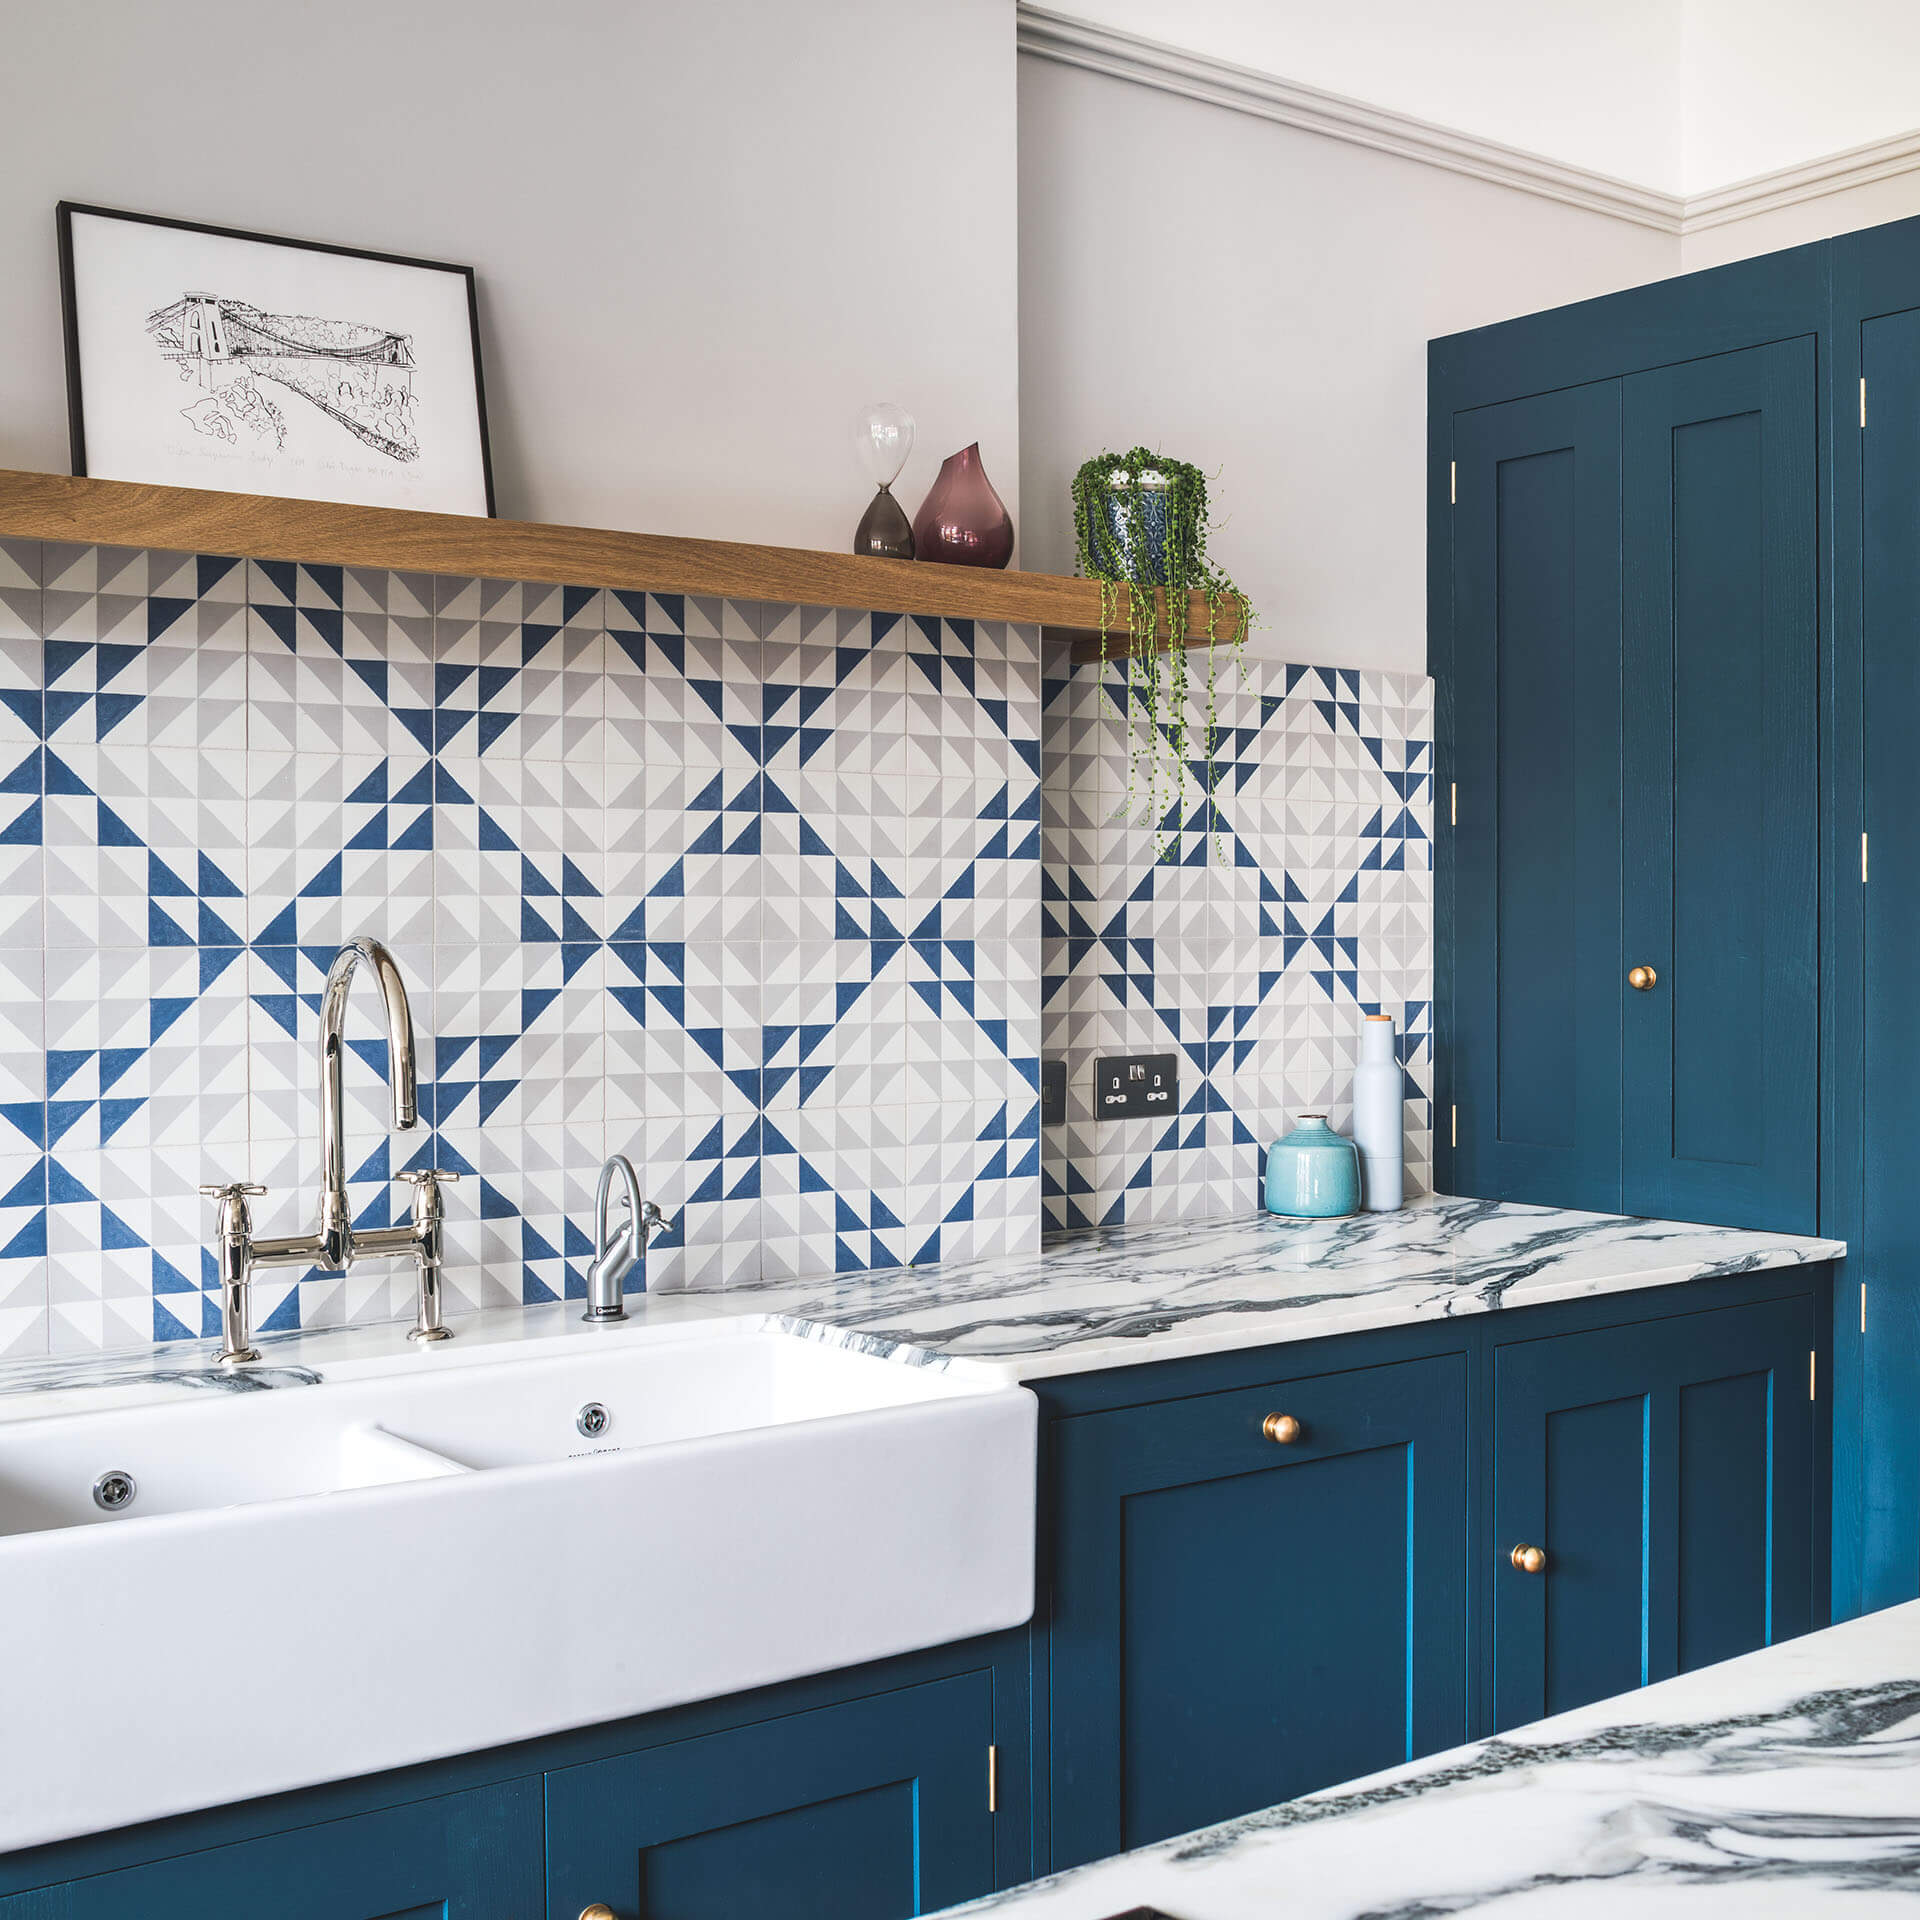 Dark blue geometric kitchen with Belfast sink and marble worktop